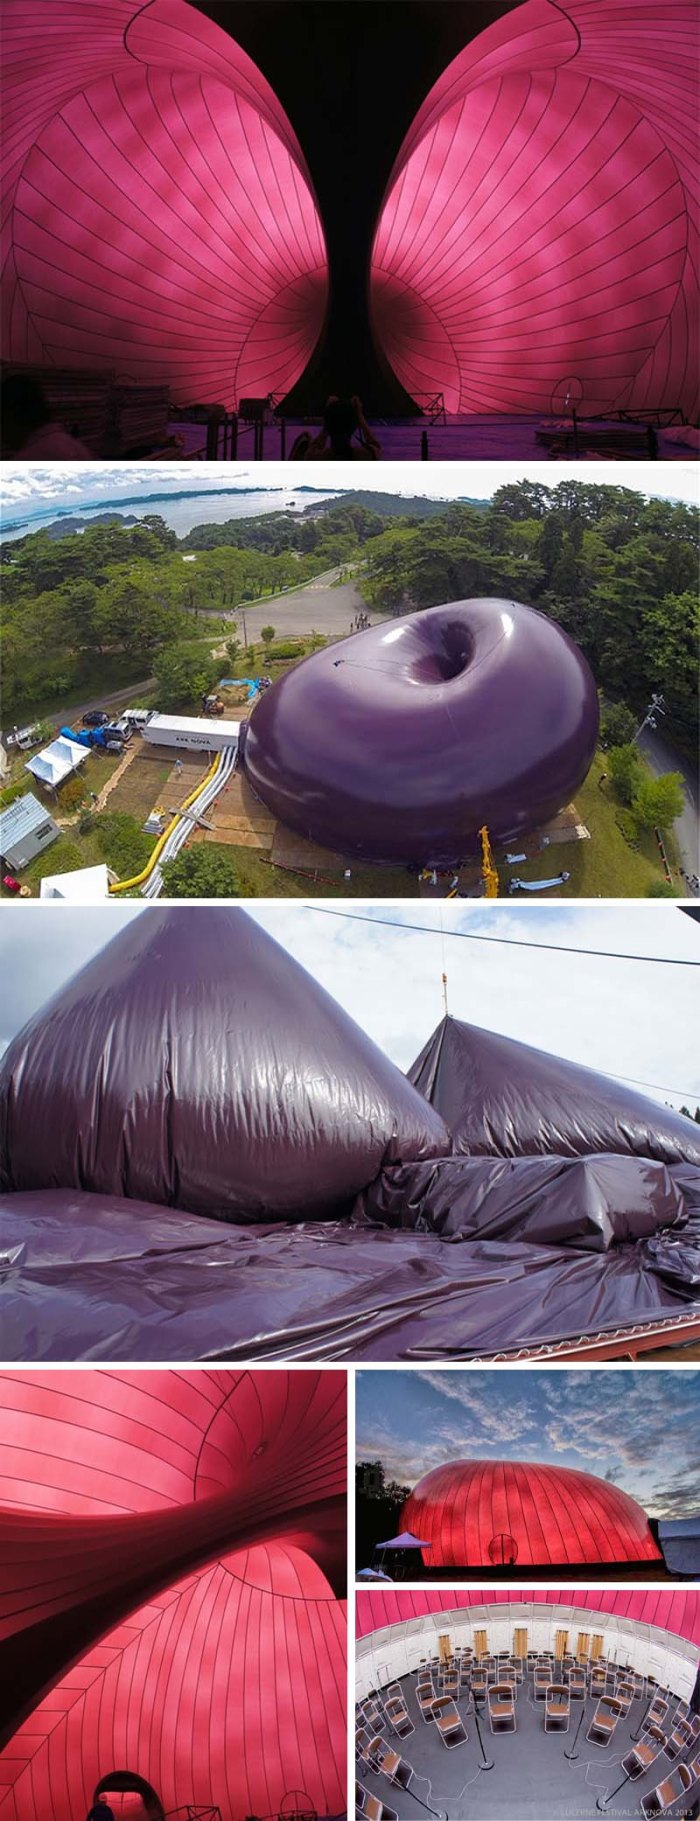 Lucerne Festival, Anish Kapoor and Arata Isozaki collaboration, inflatable concert hall Ark Nova